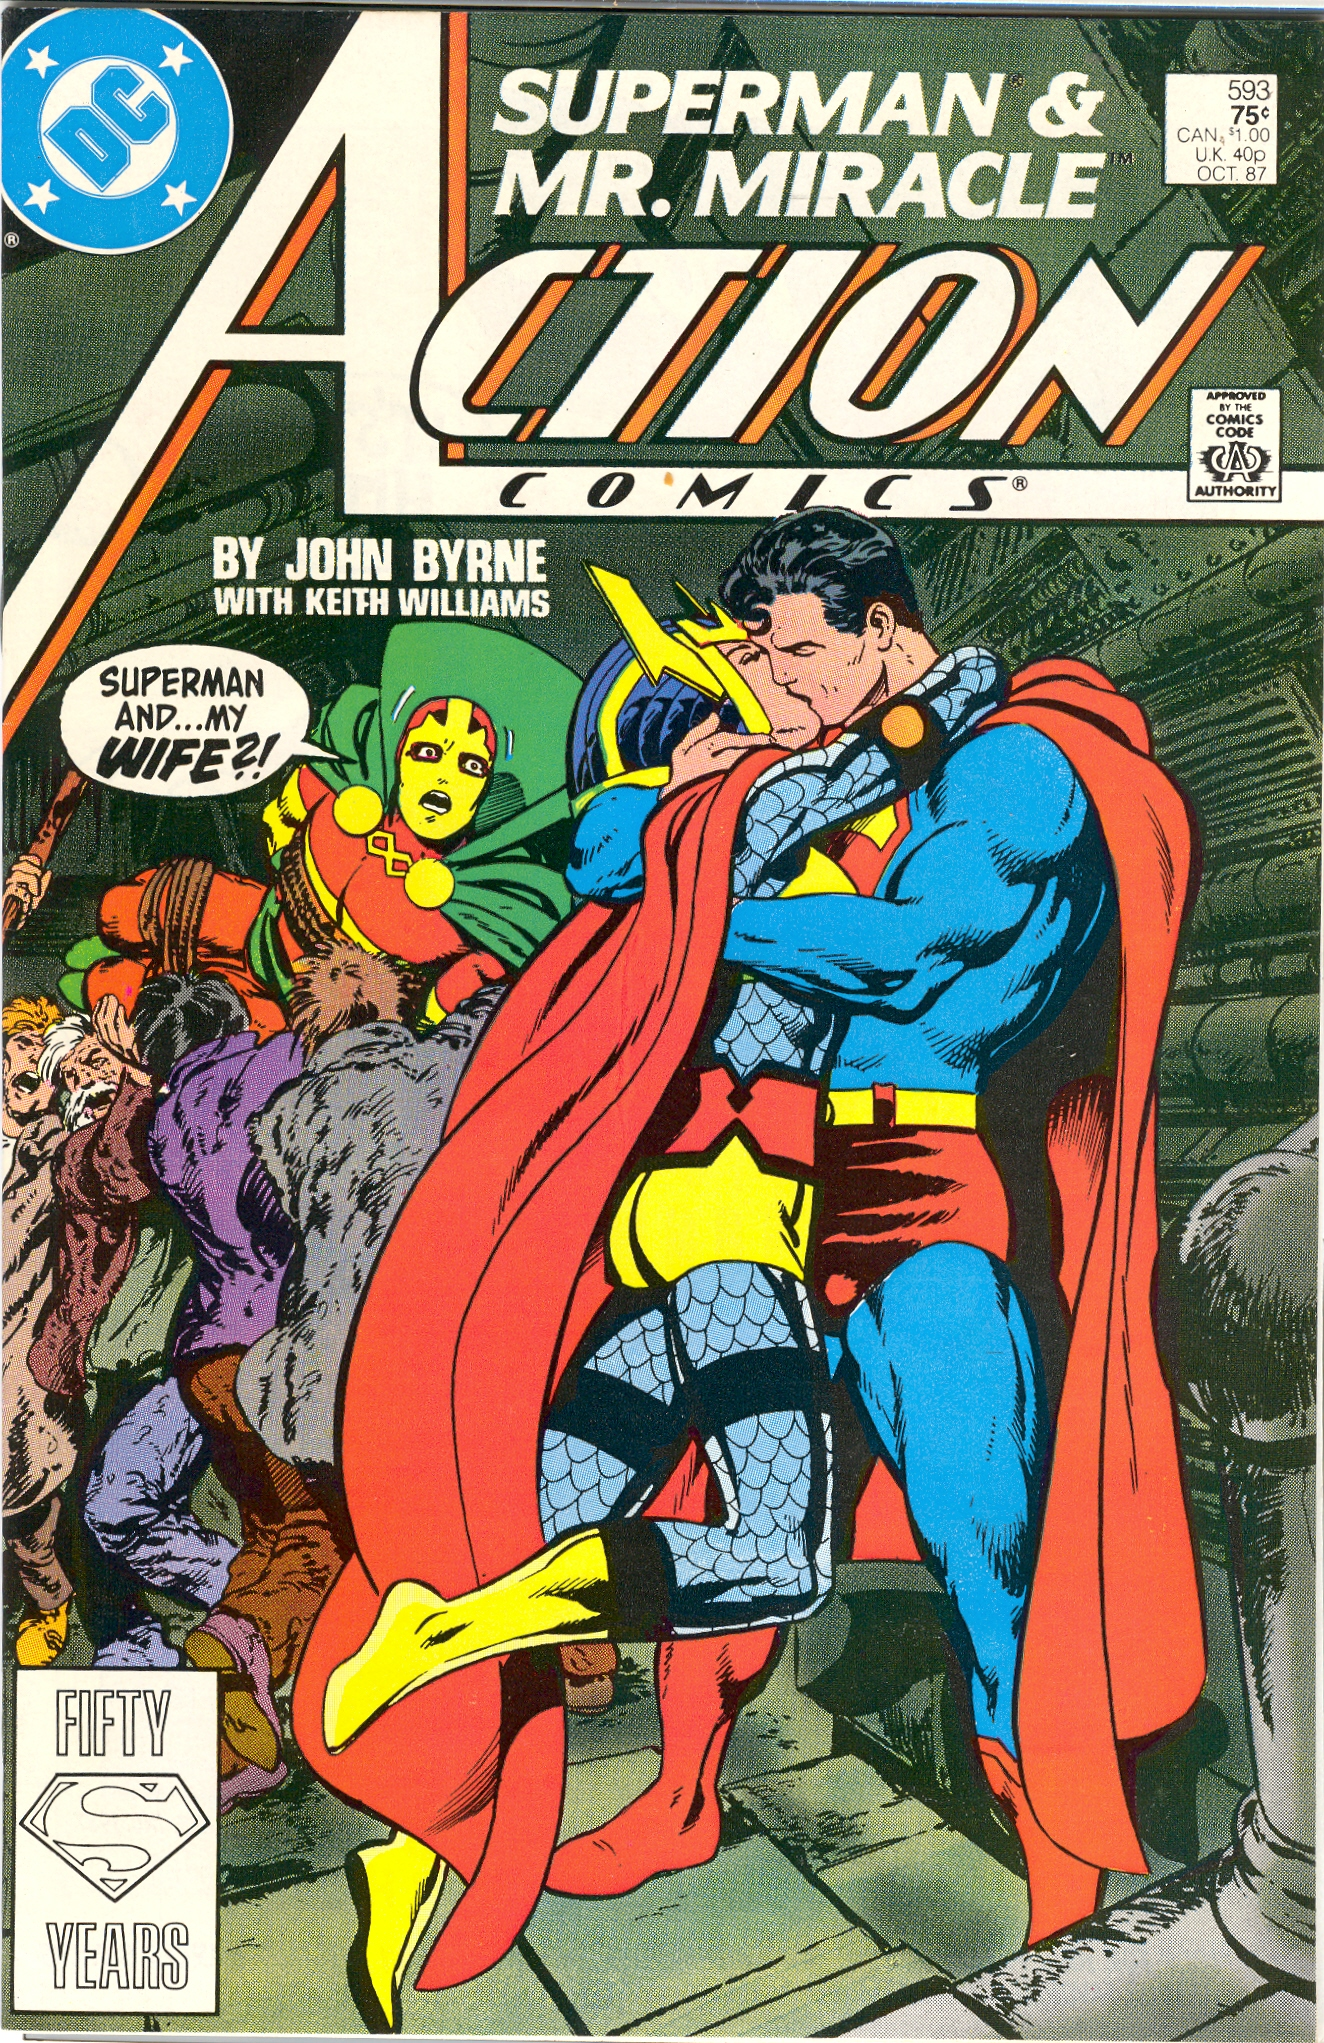 Crazy Comic Covers: Action Comics #593 The Suicide Snare